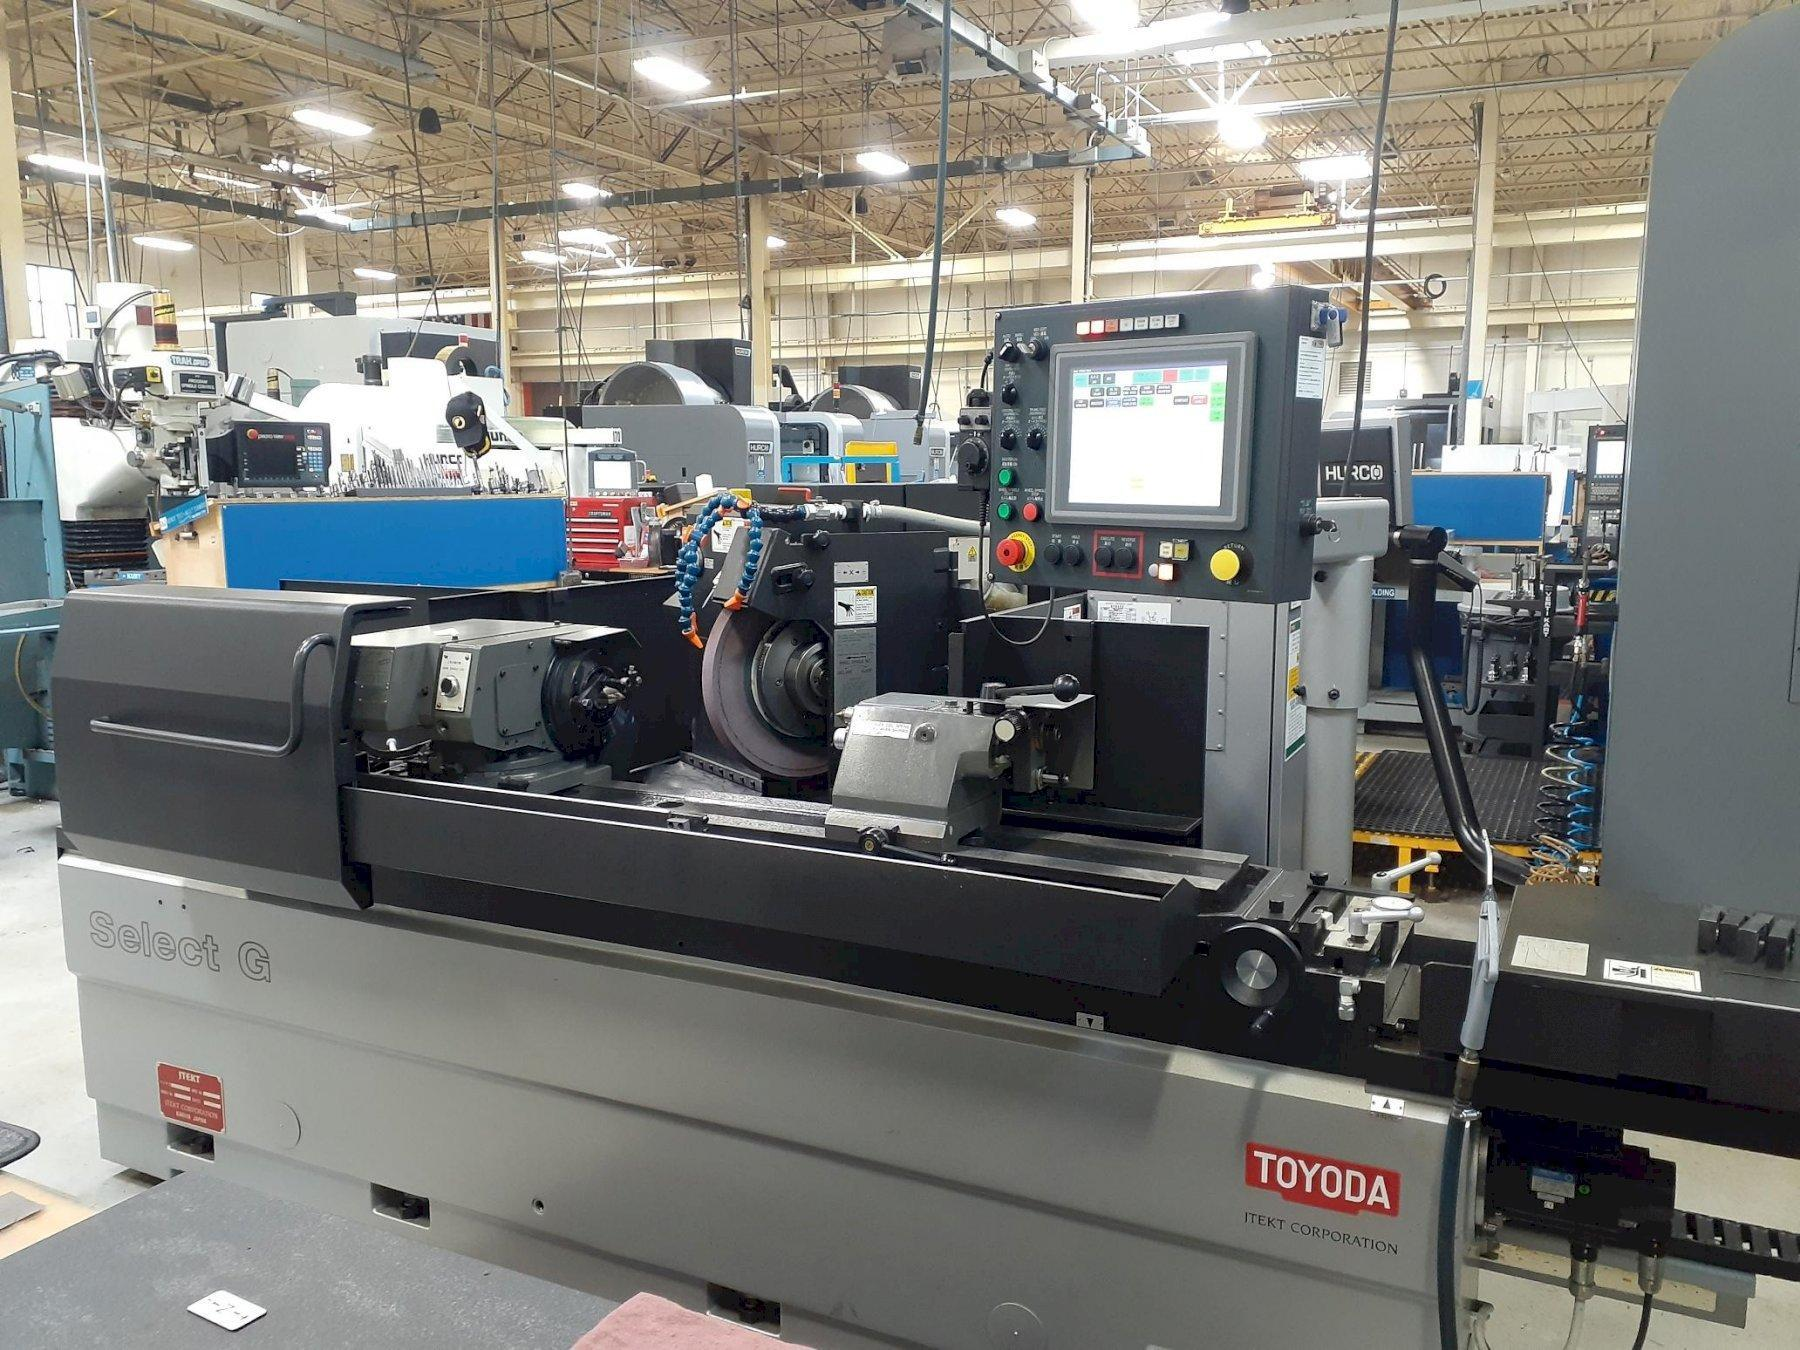 Toyoda Select G-100II CNC Cylindrical Grinder, 12.6